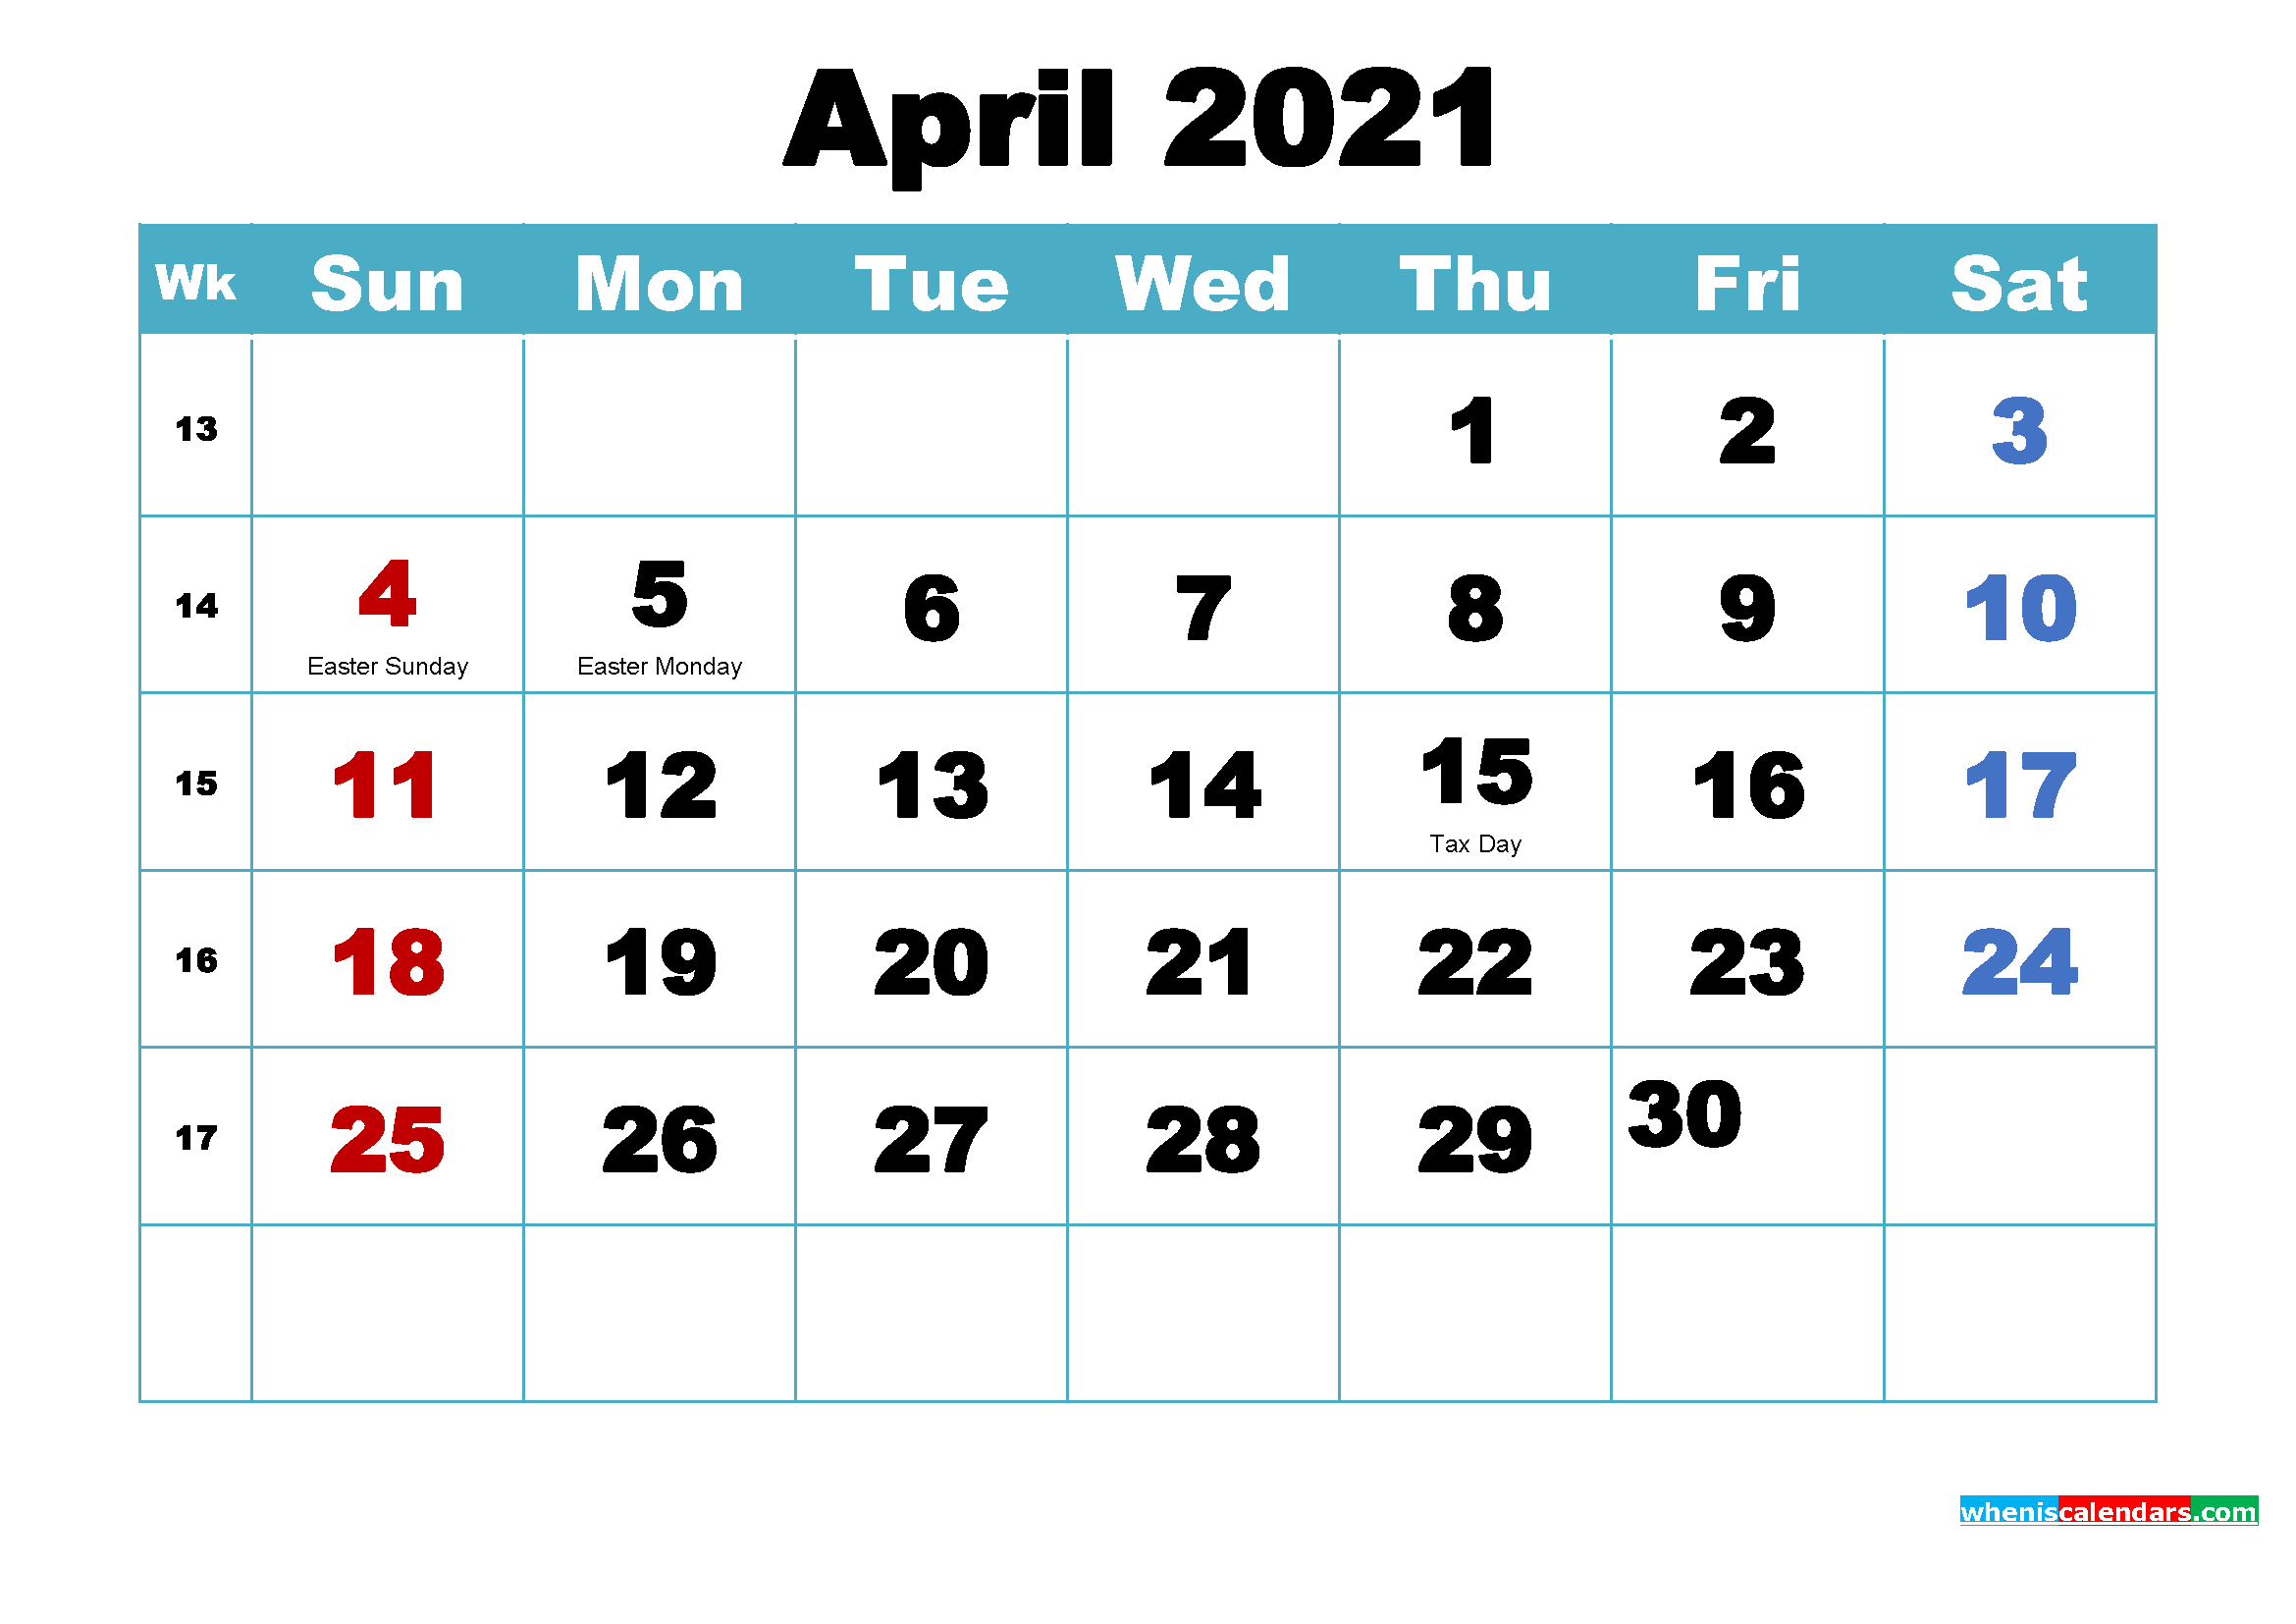 What Will Happen In April 2021